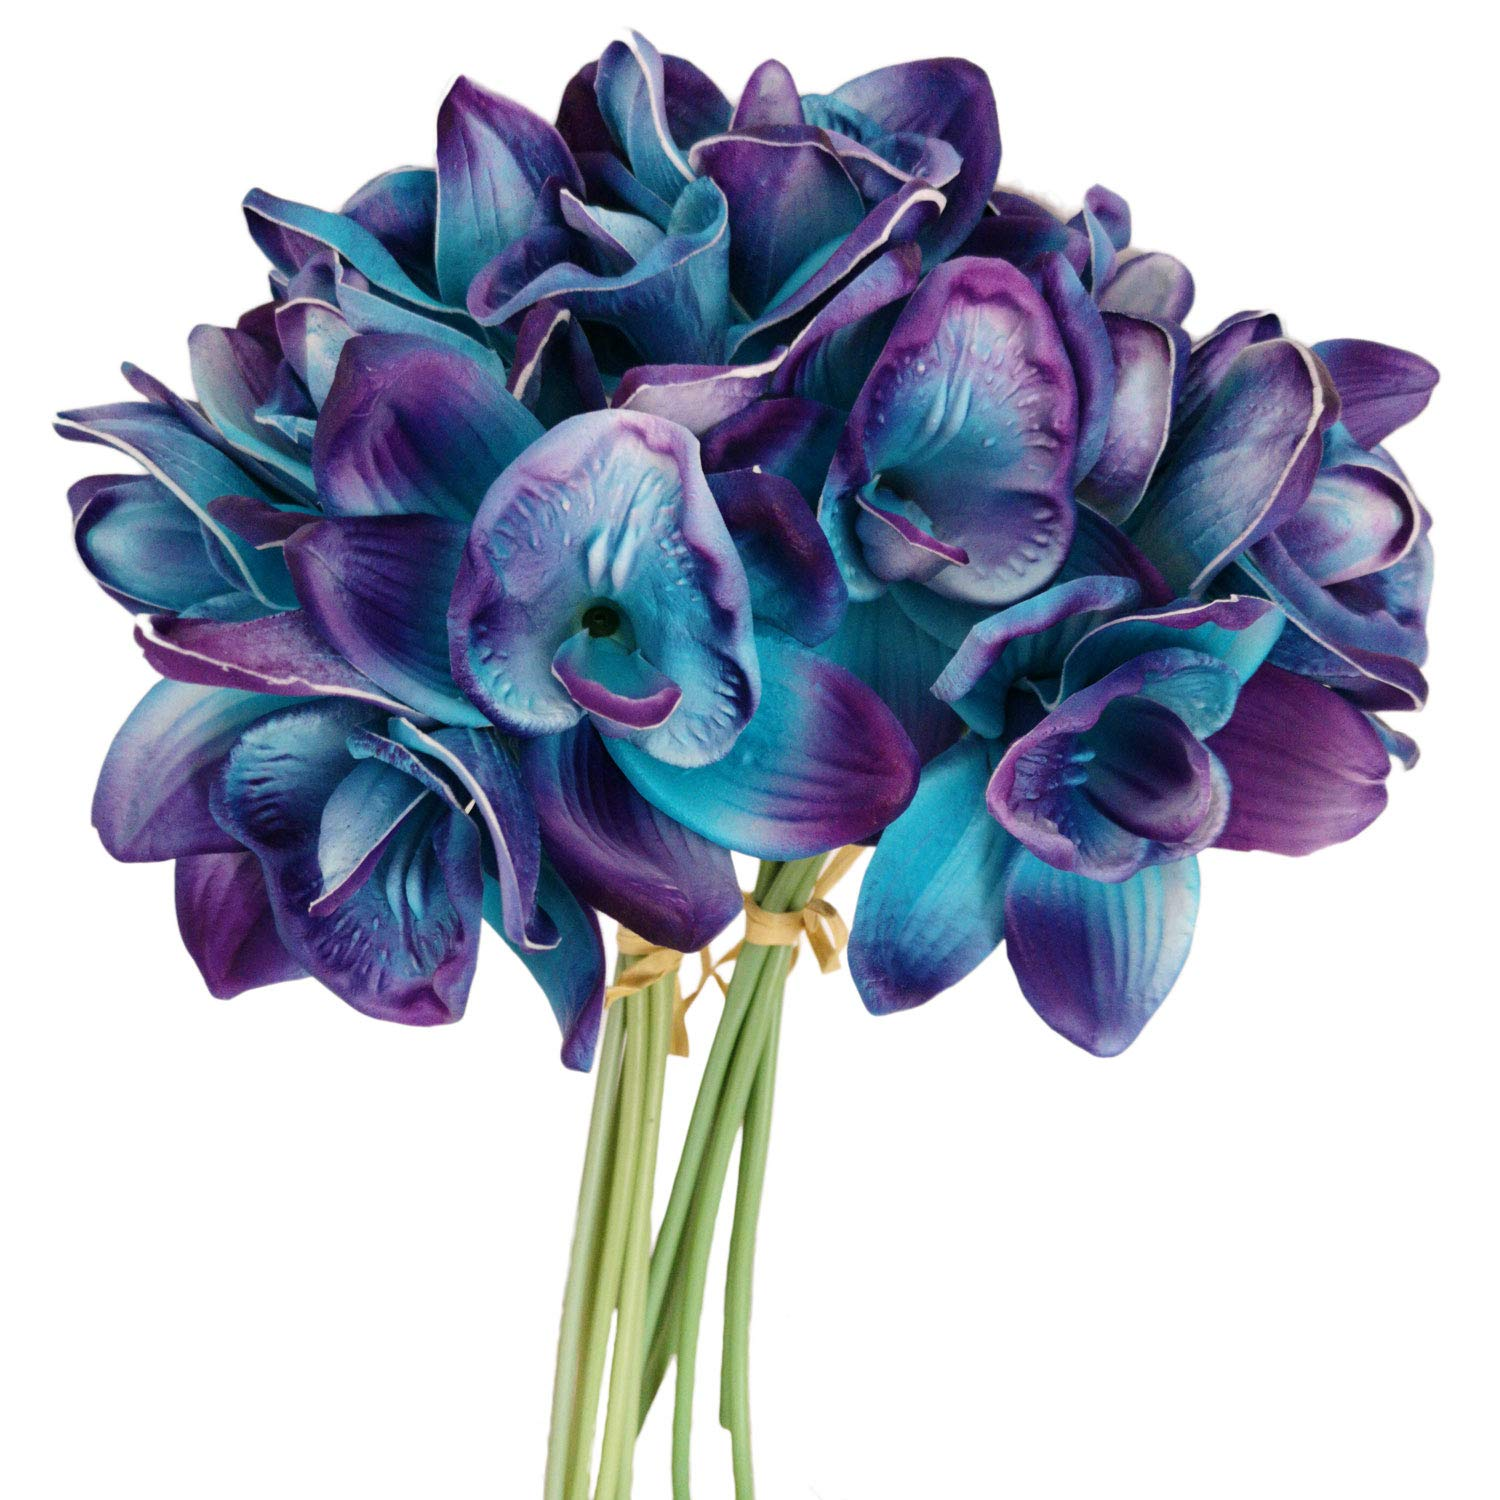 Lily Garden Artificial Flowers Purple Turquoise Orchid Stem Real Touch Flowers Set of 12 Stems by Lily Garden